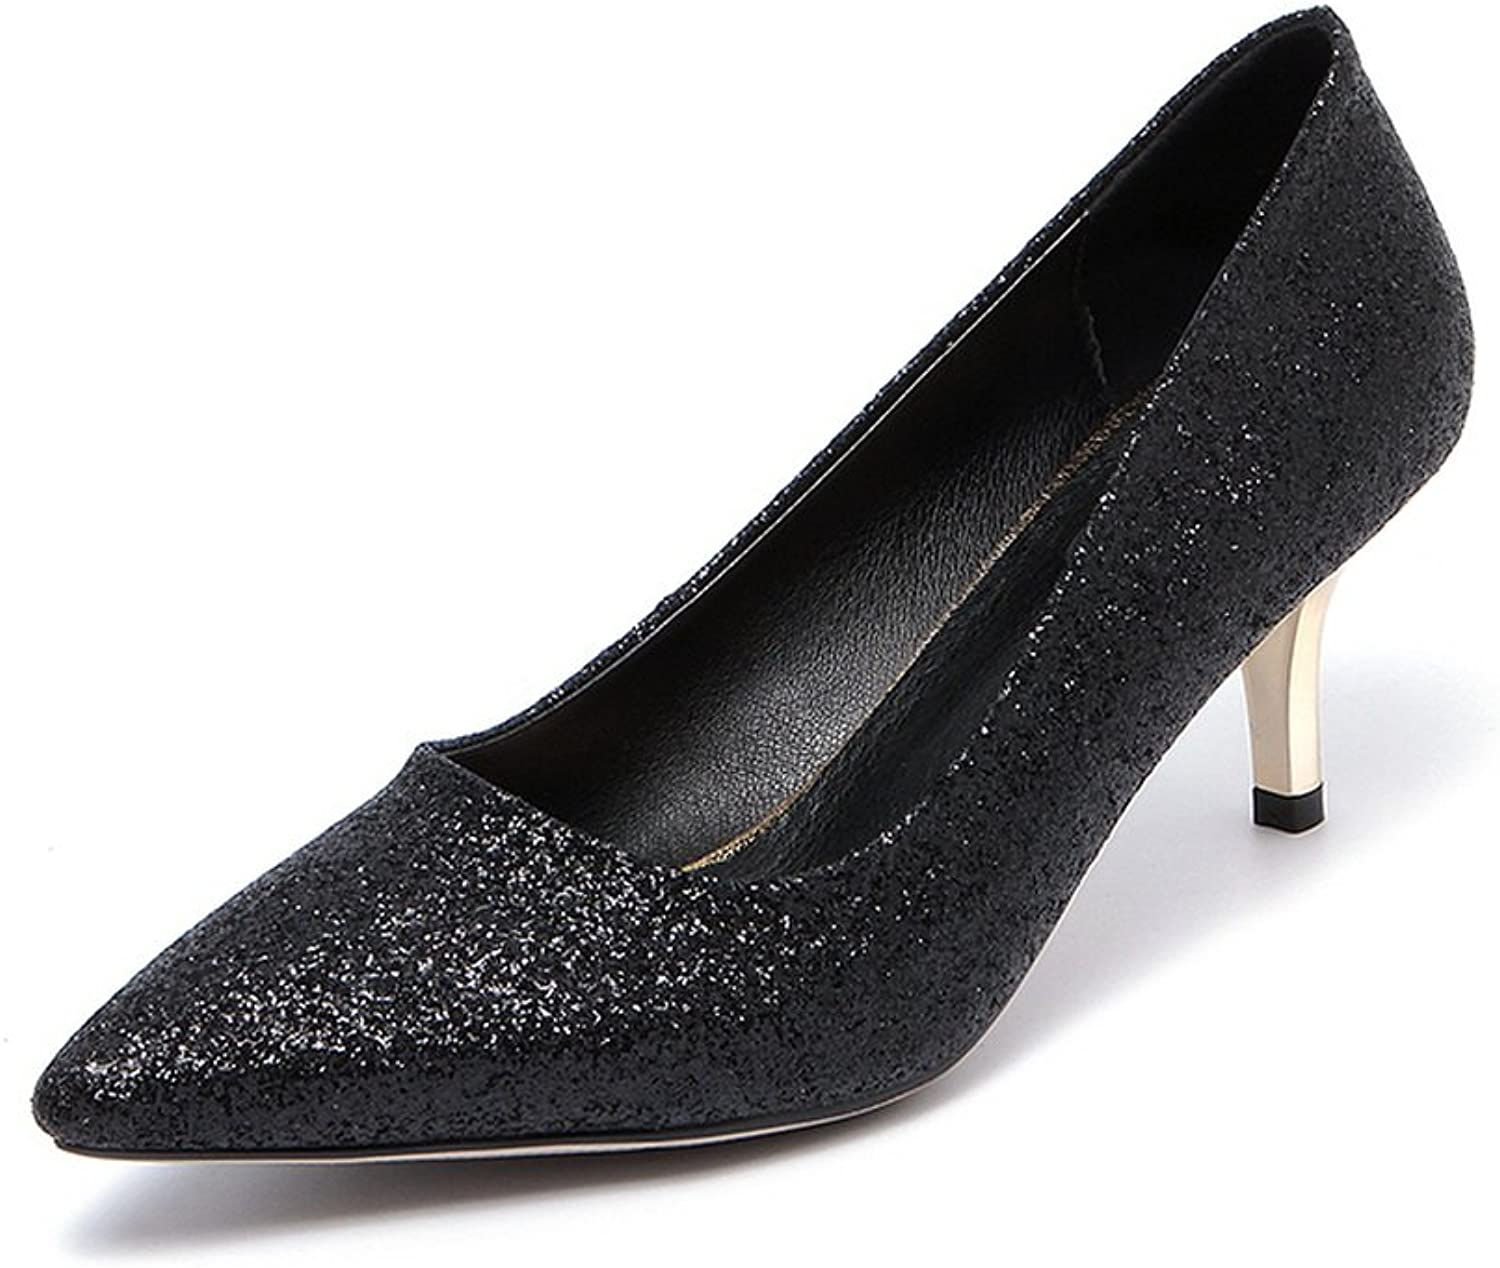 1TO9 Womens Pointed-Toe Low-Cut Uppers Solid Sequin Pumps shoes MMS03823